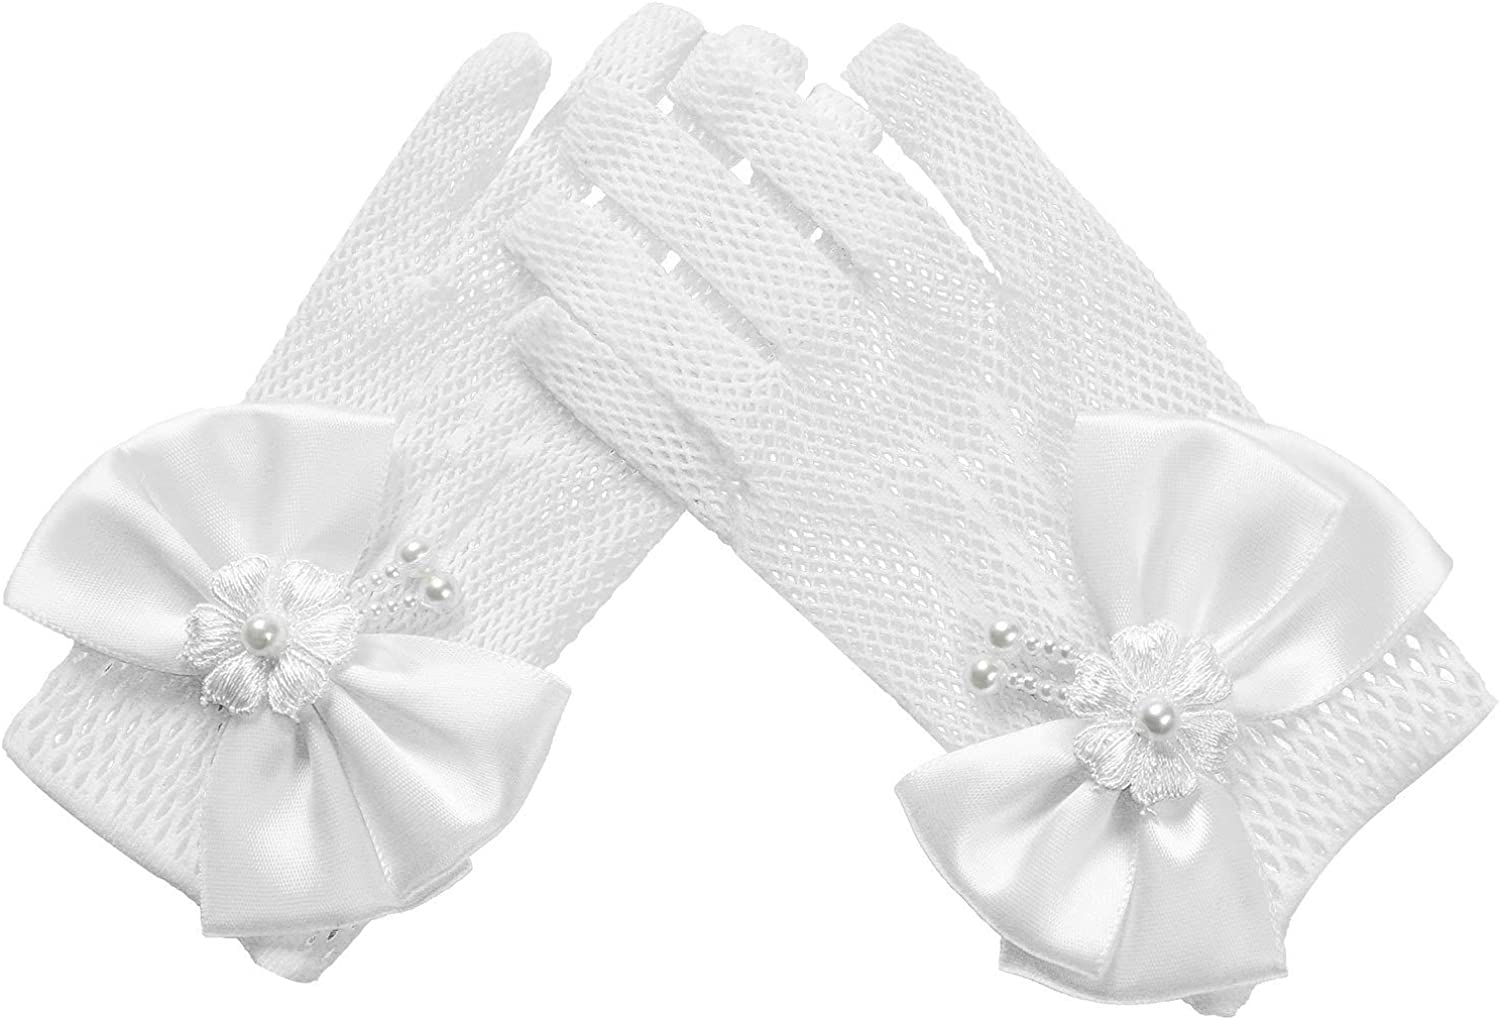 YOOJIA Kids Flower Girls 67% OFF of fixed price Max 47% OFF Bow Tie Princess Gloves Lace Pearls Spe